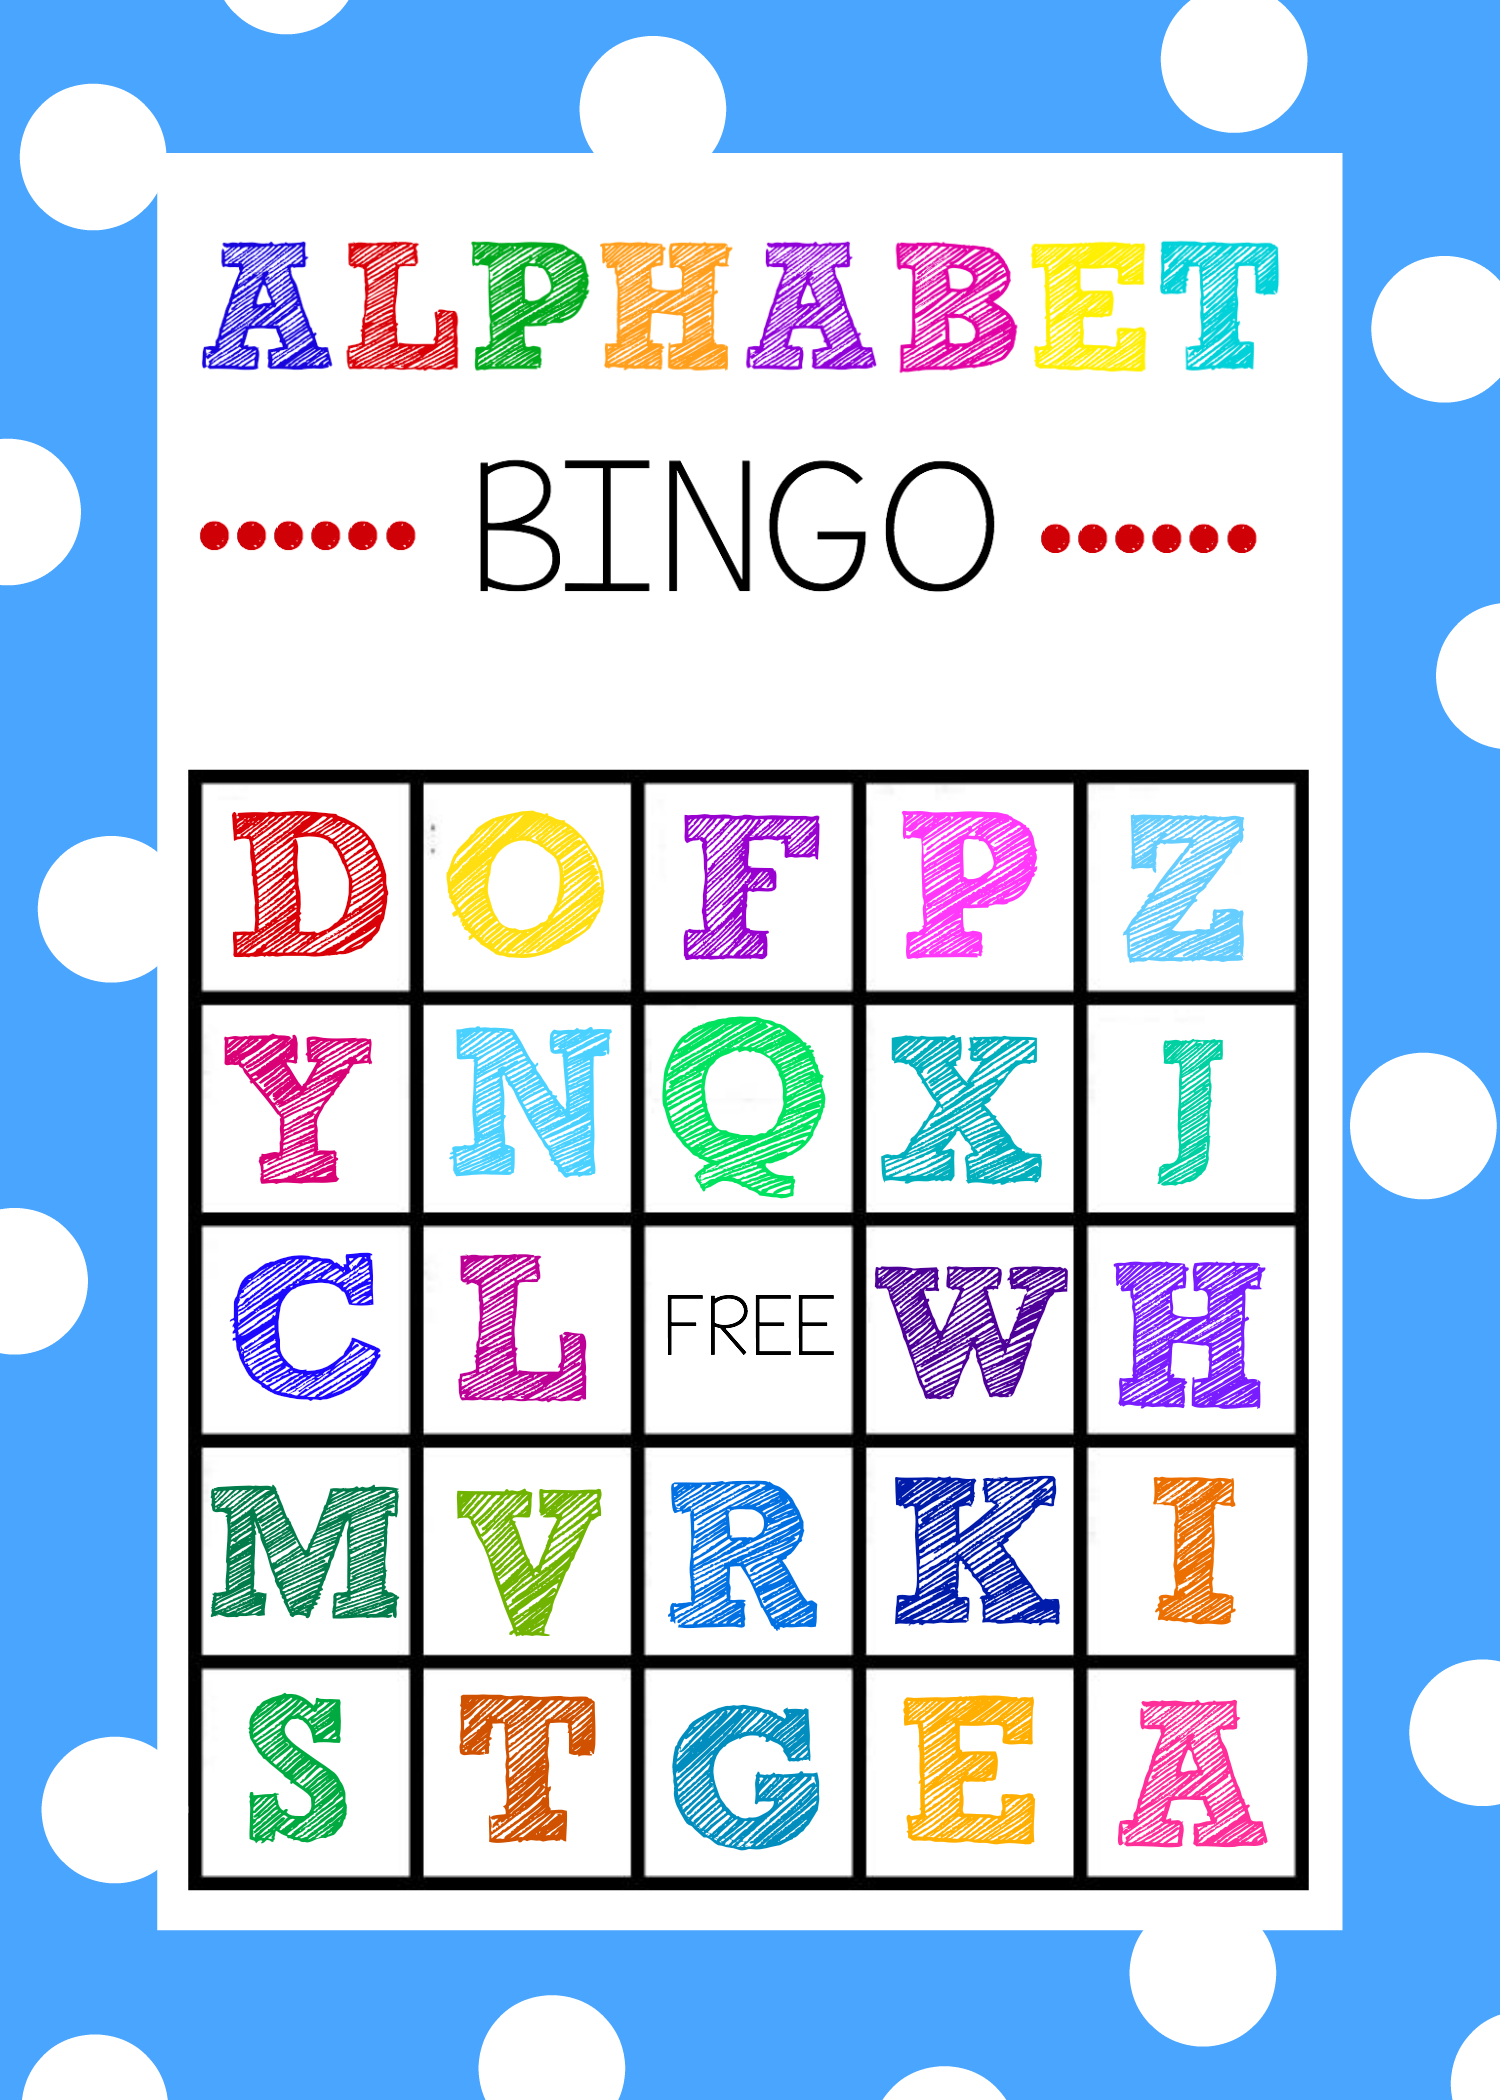 Free Printable Alphabet Bingo Game - Free Printable Bingo Games